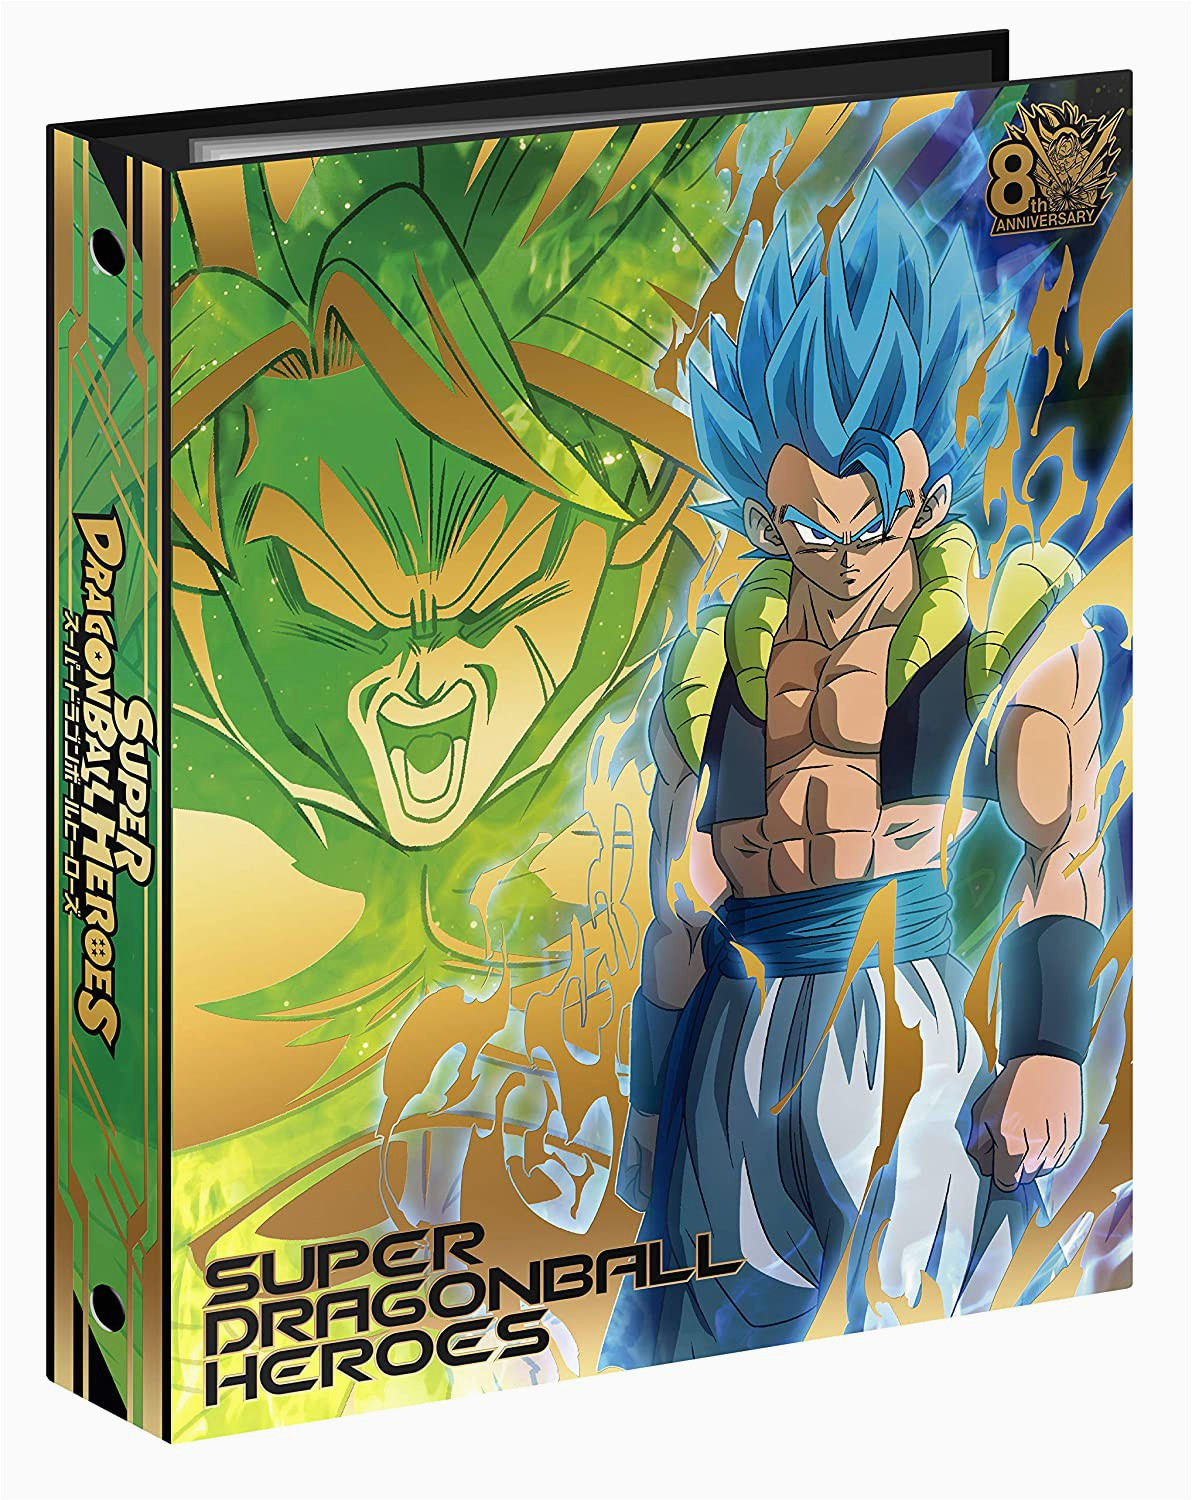 Dragon Ball Z area Rug Adolescence C Hj5 03 Gohan Dragon Ball Heroes Jm05 Series